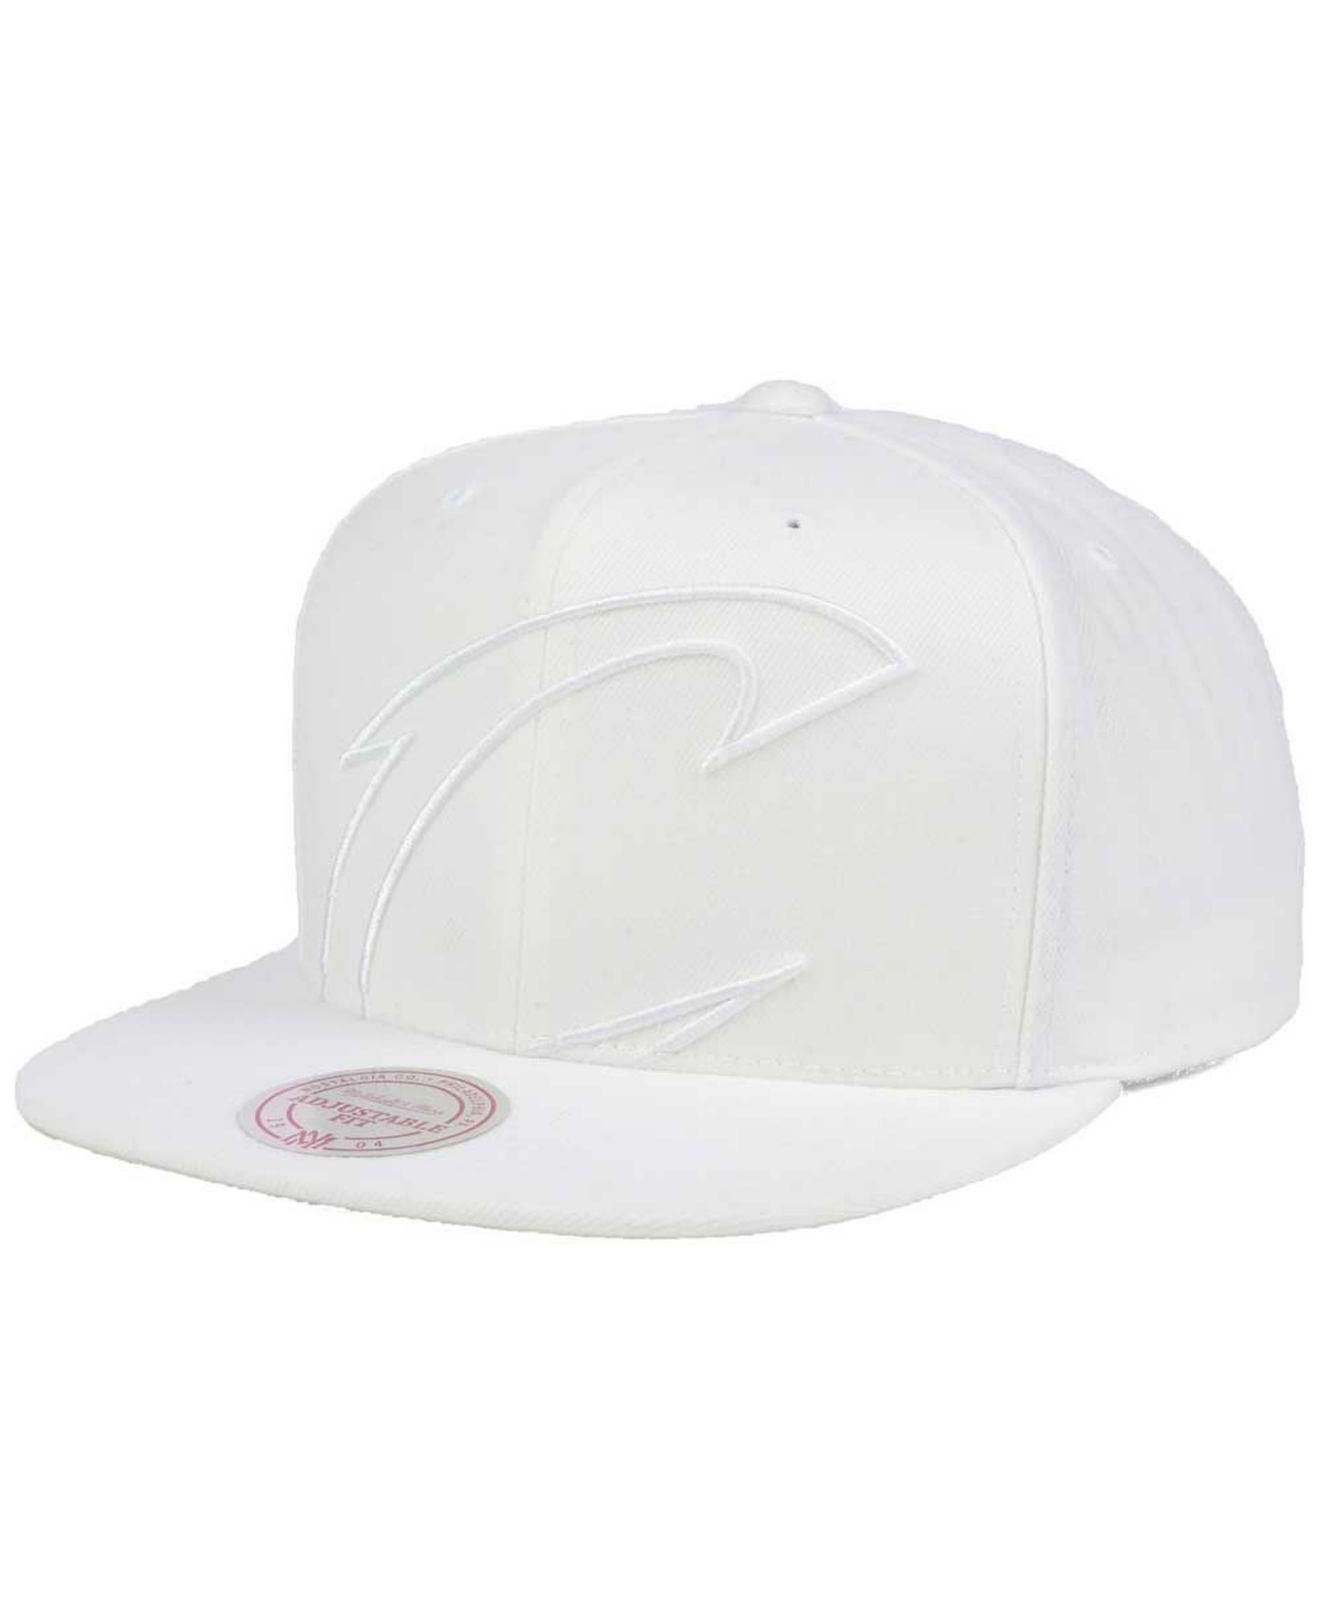 online store 555a8 2c176 new arrivals mitchell ness. mens white cleveland cavaliers cropped xl logo  snapback cap 926ba b918d